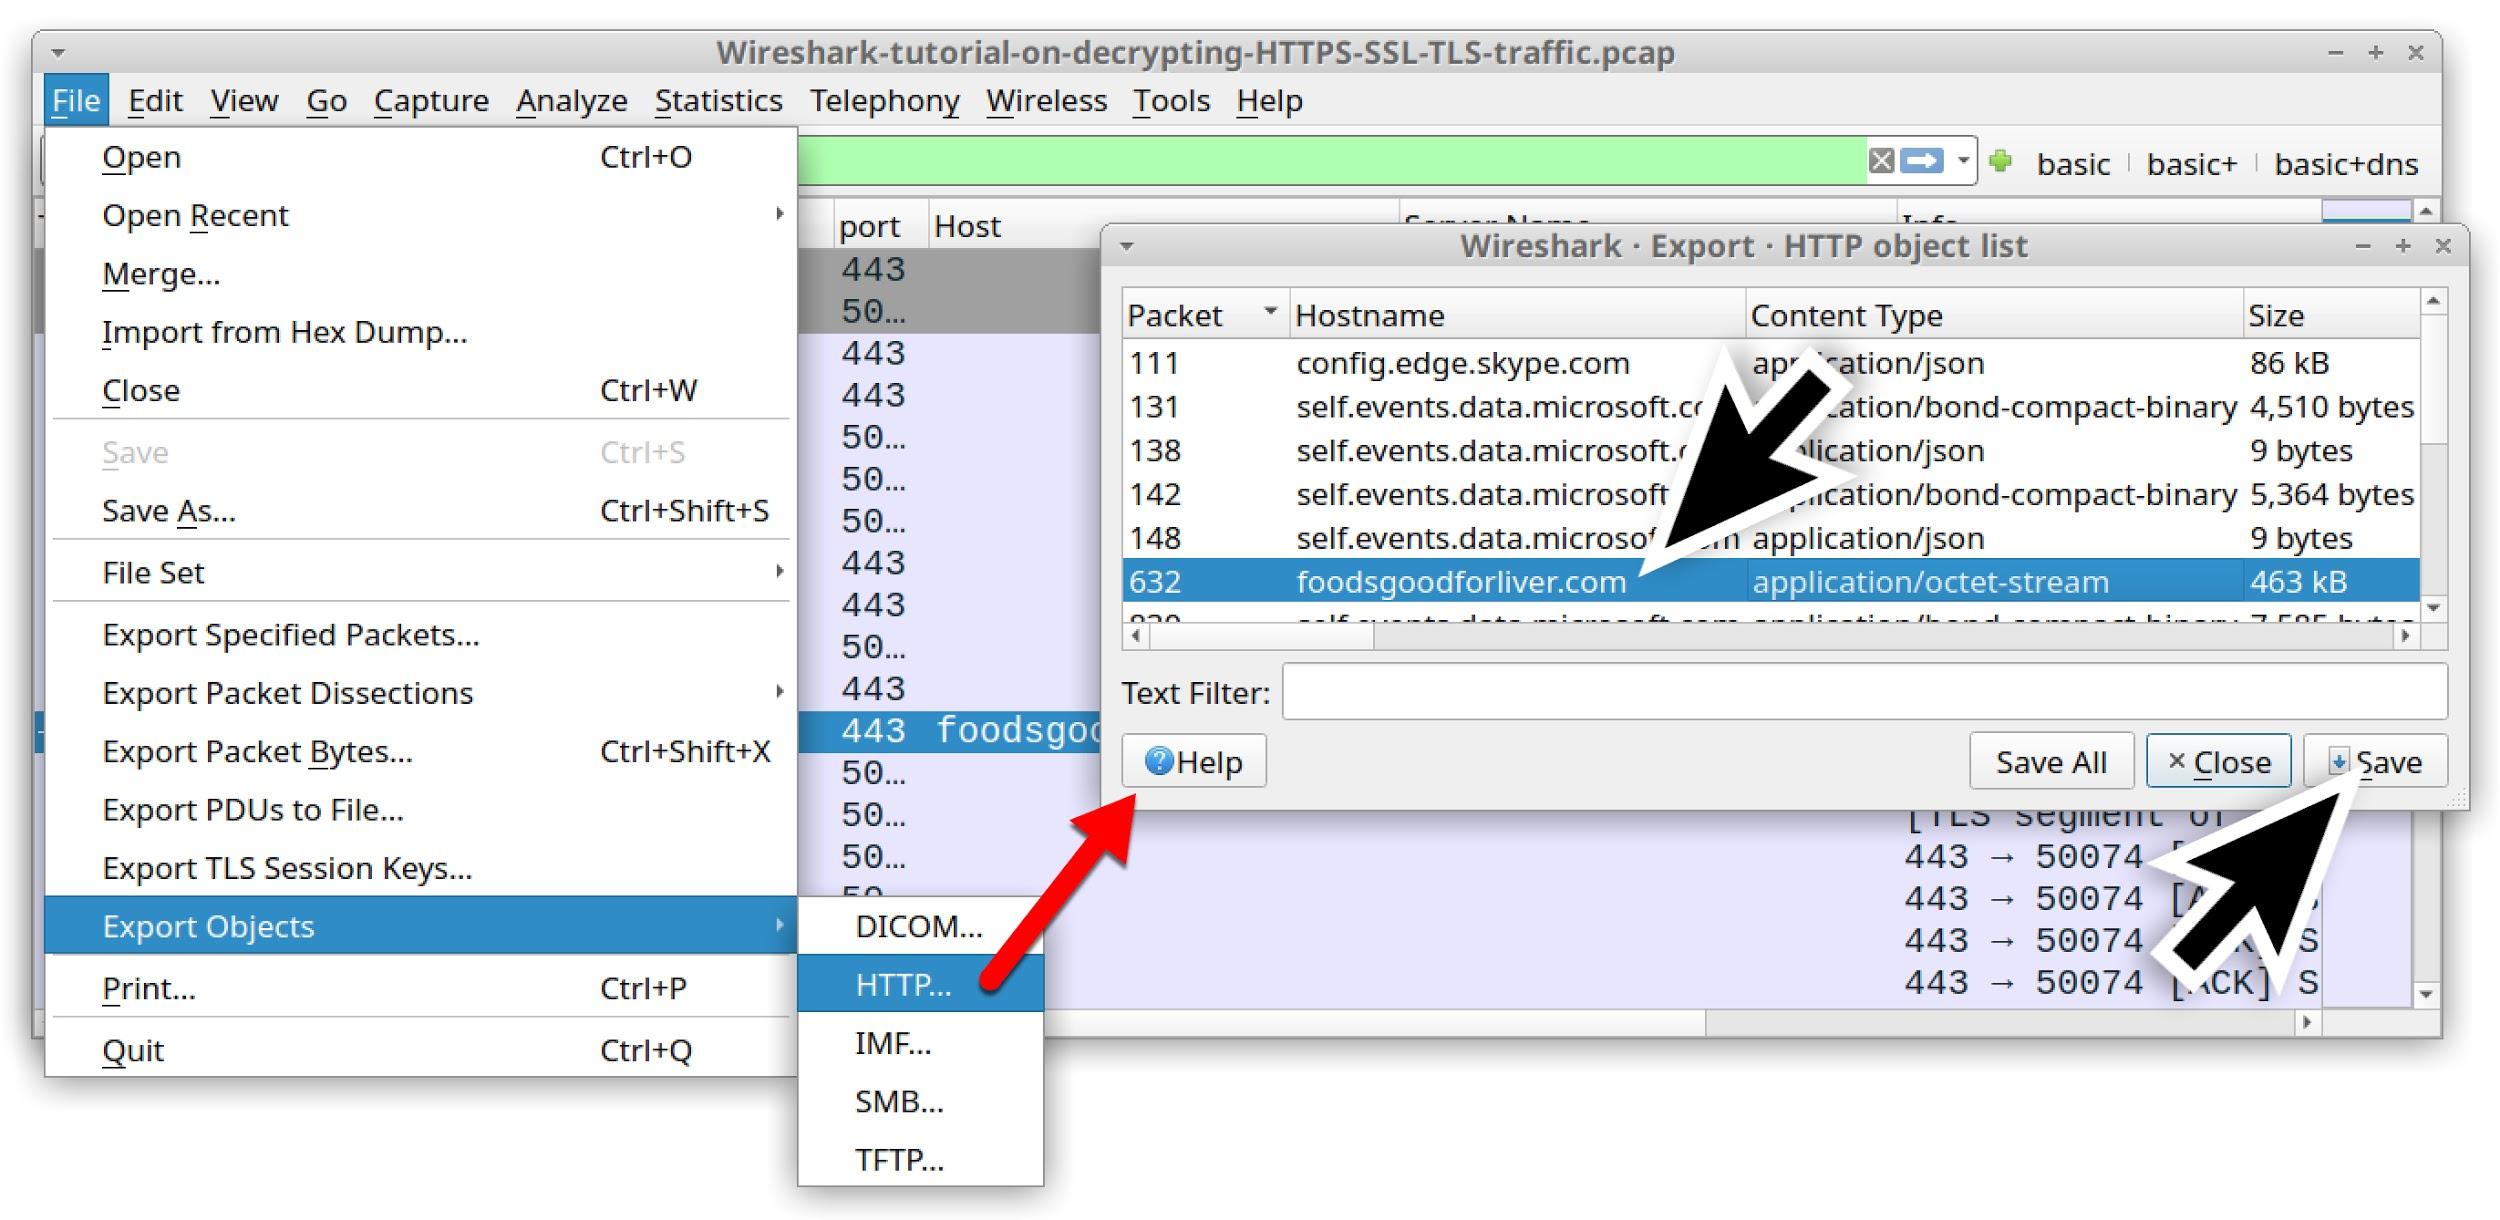 Wireshark-tutorial-on-decrypting-HTTPS-SSL-TLS-traffic.pcap - the screenshot shows the series of clicks required to export the malware binary used as an example in the decrypting HTTPS traffic tutorial.